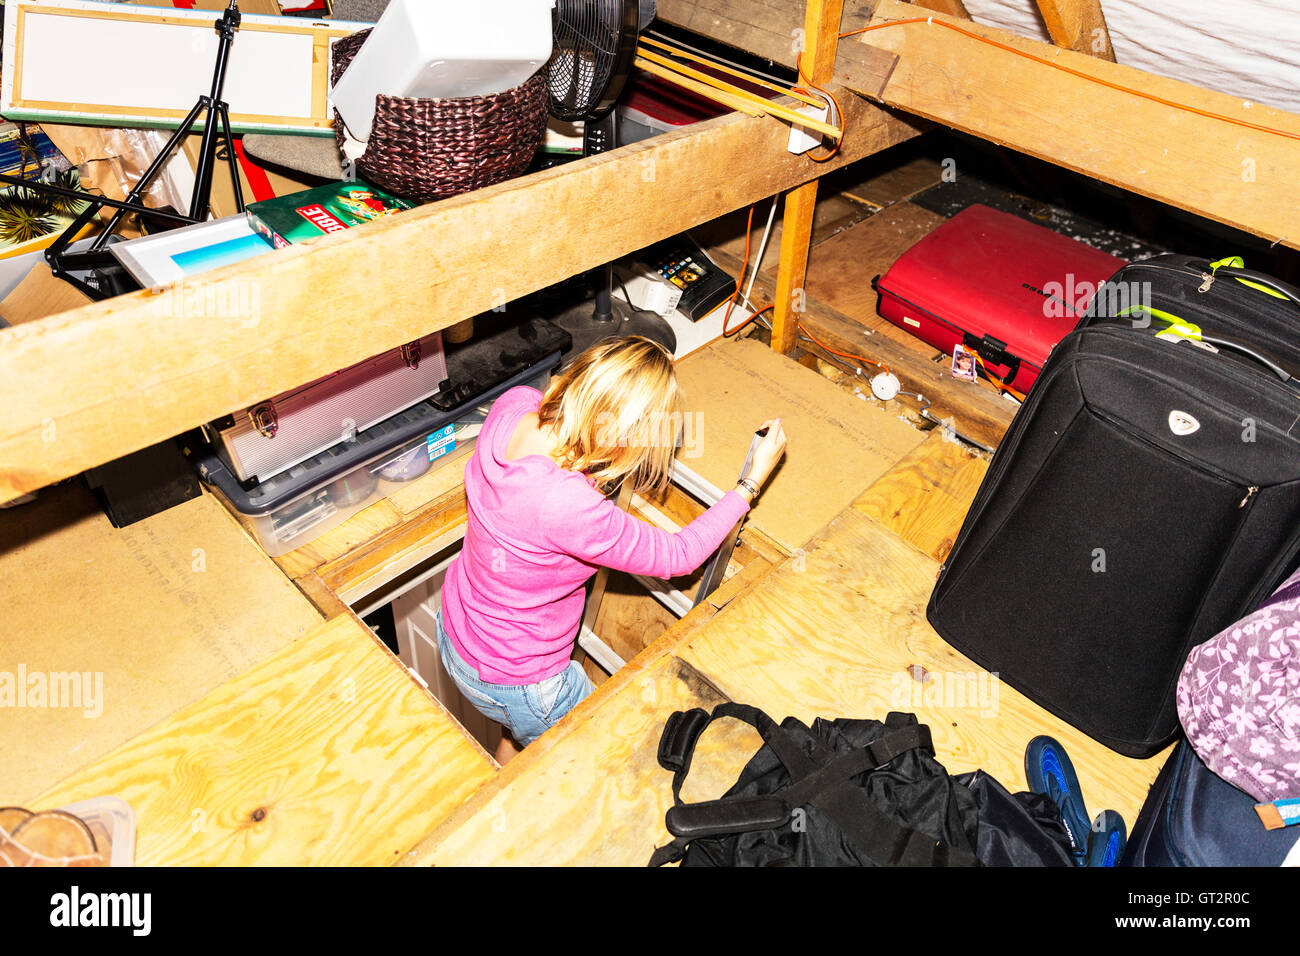 Woman climbing in to loft attic space loft ladder ladders into loft UK England lofts space spaces - Stock Image